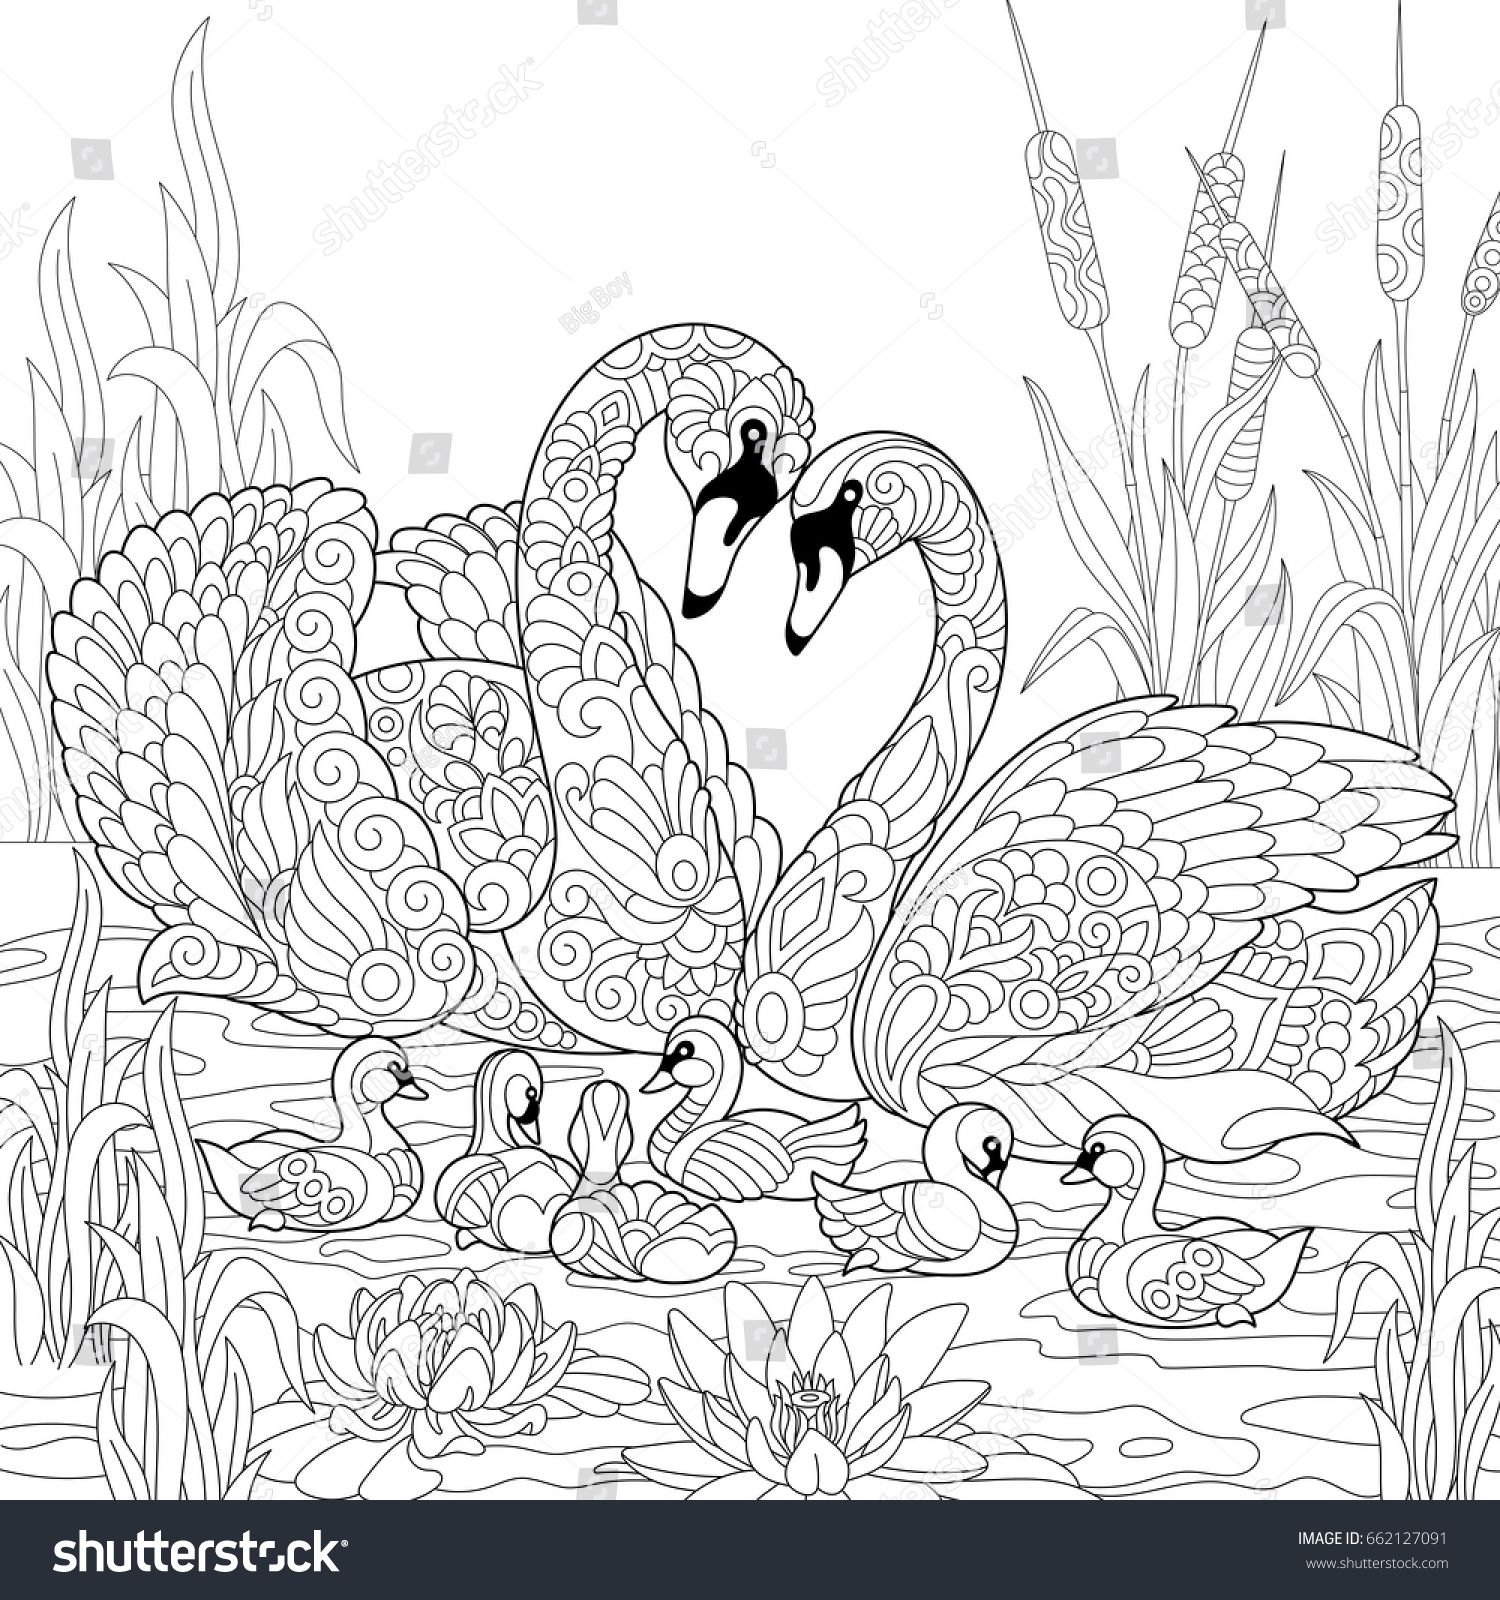 Coloring Book Page Of Swan Birds Family Lotus Flowers And Reed Grass Freehand Sketch Drawing For A Animal Coloring Pages Coloring Books Animal Coloring Books